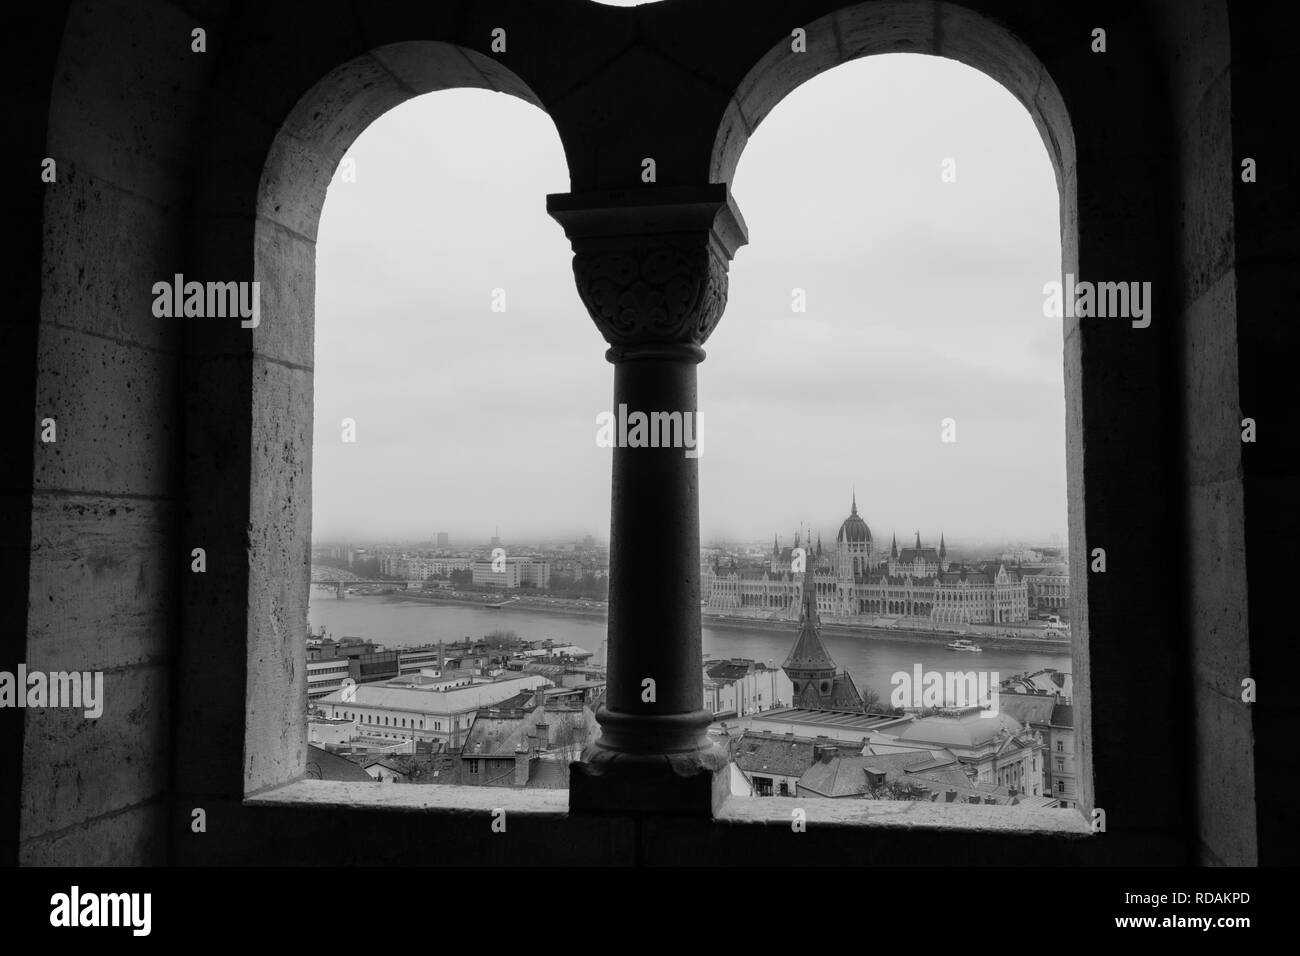 The view of the Hungarian Parliament Building and Pest from the window of Halászbástya. - Stock Image